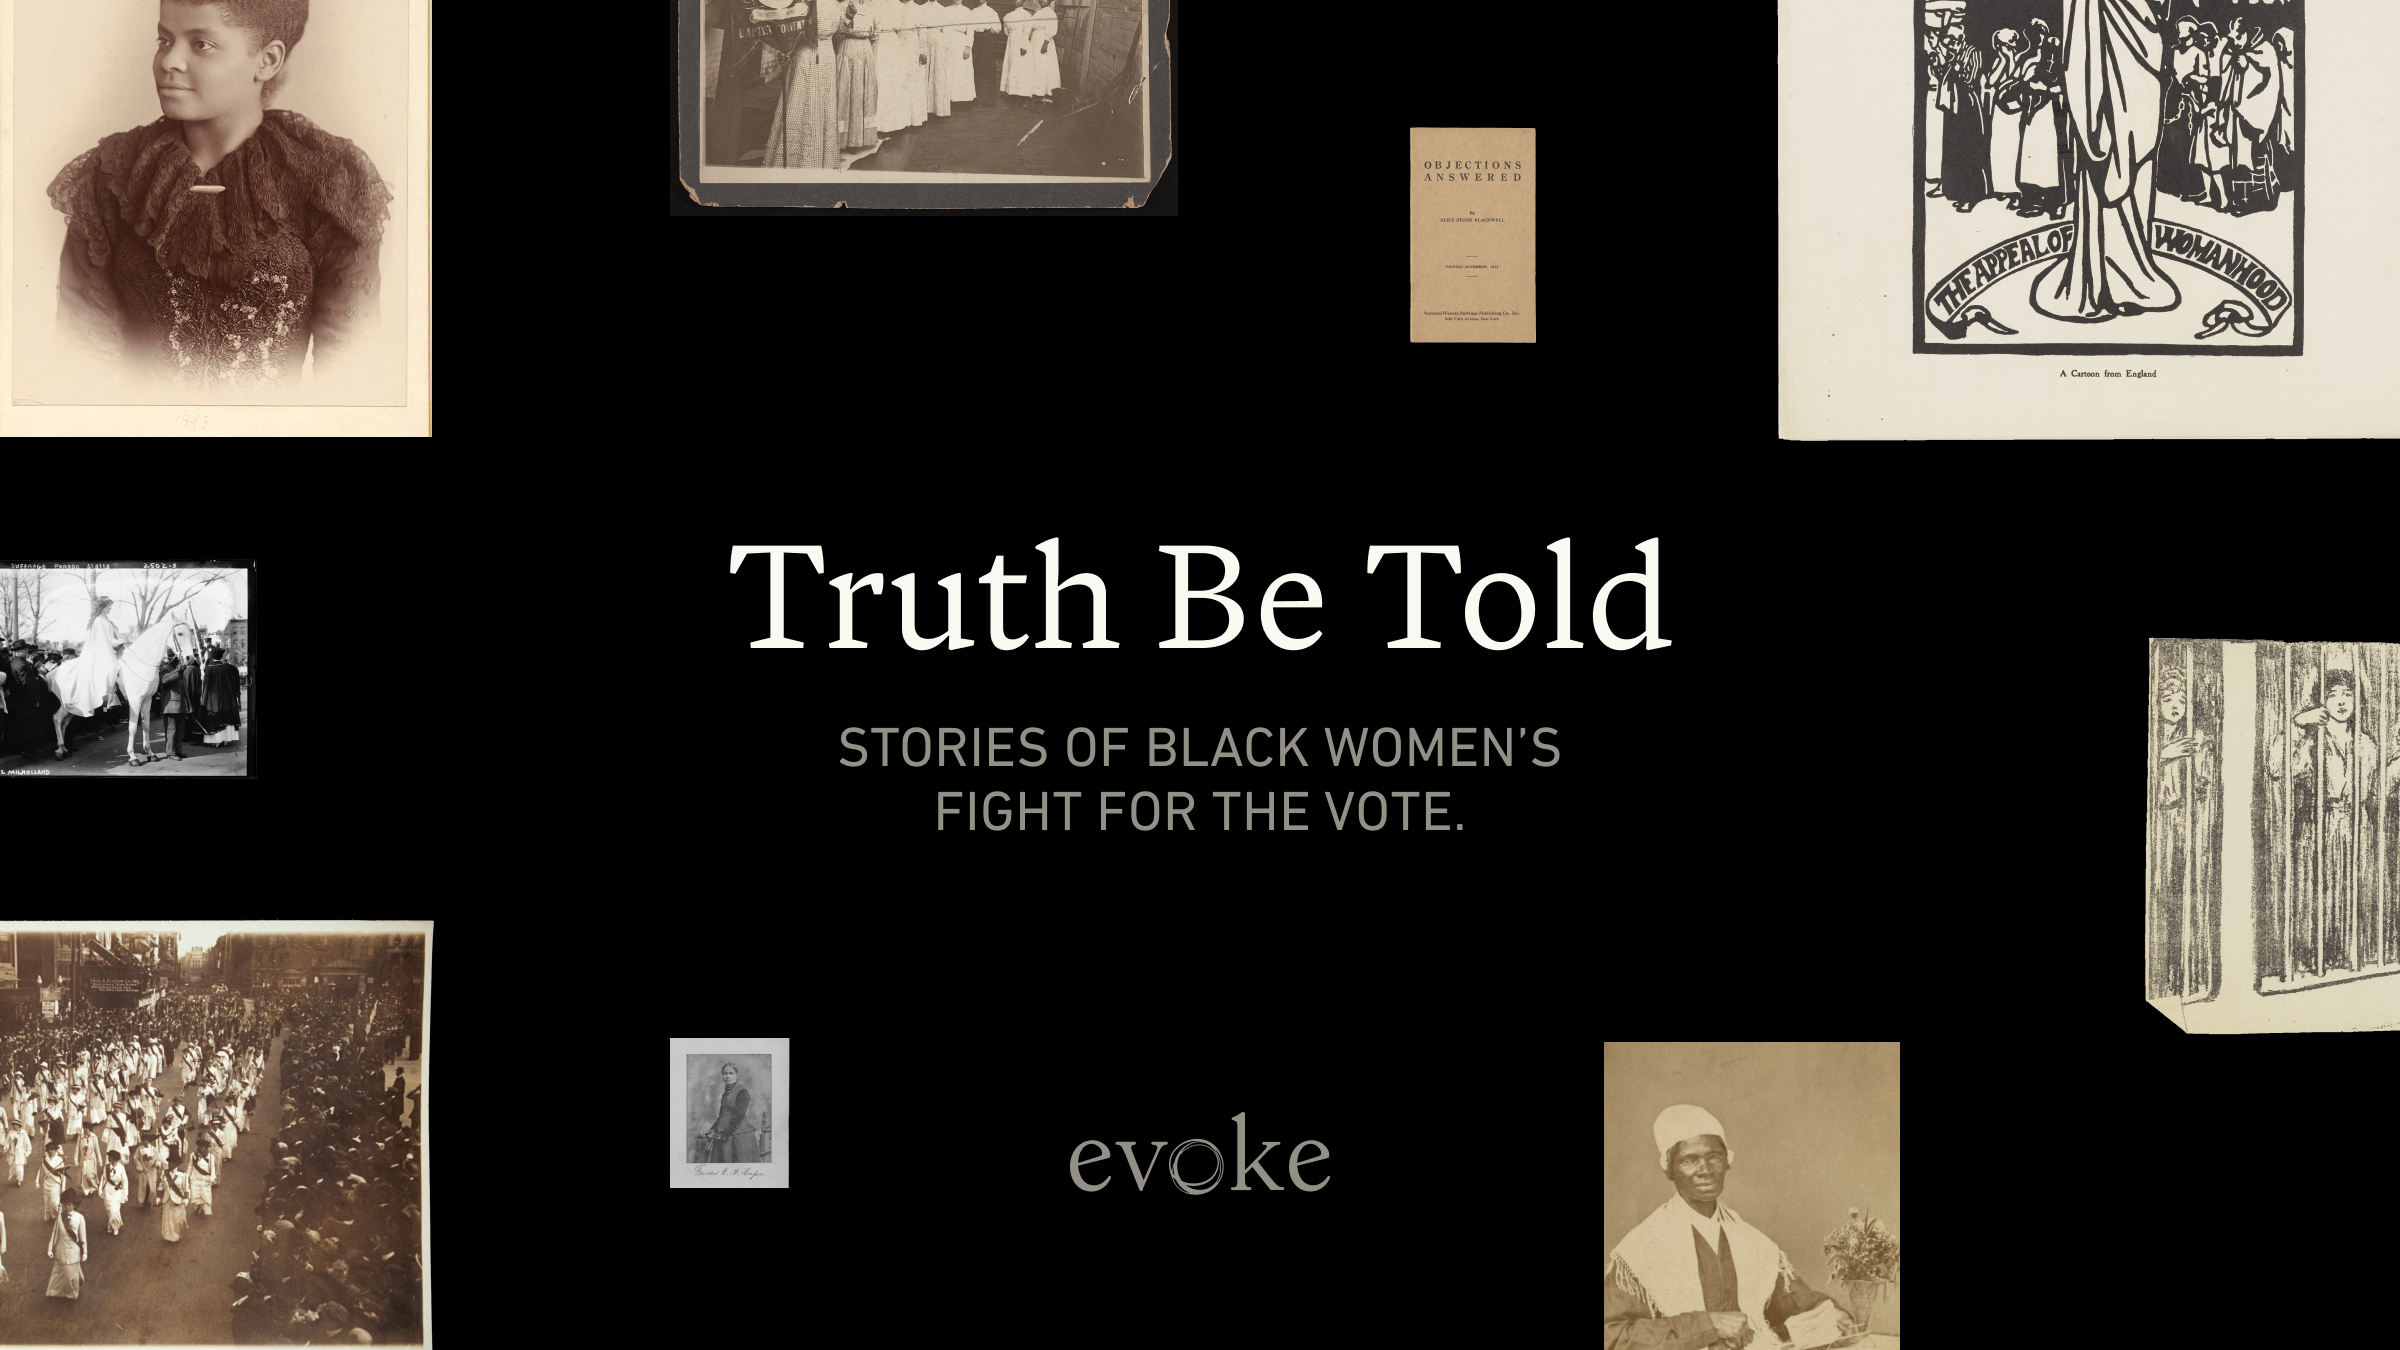 Truth Be Told—Stories of Black Women's Right for the Vote. A black background with various portraits and images hovering.